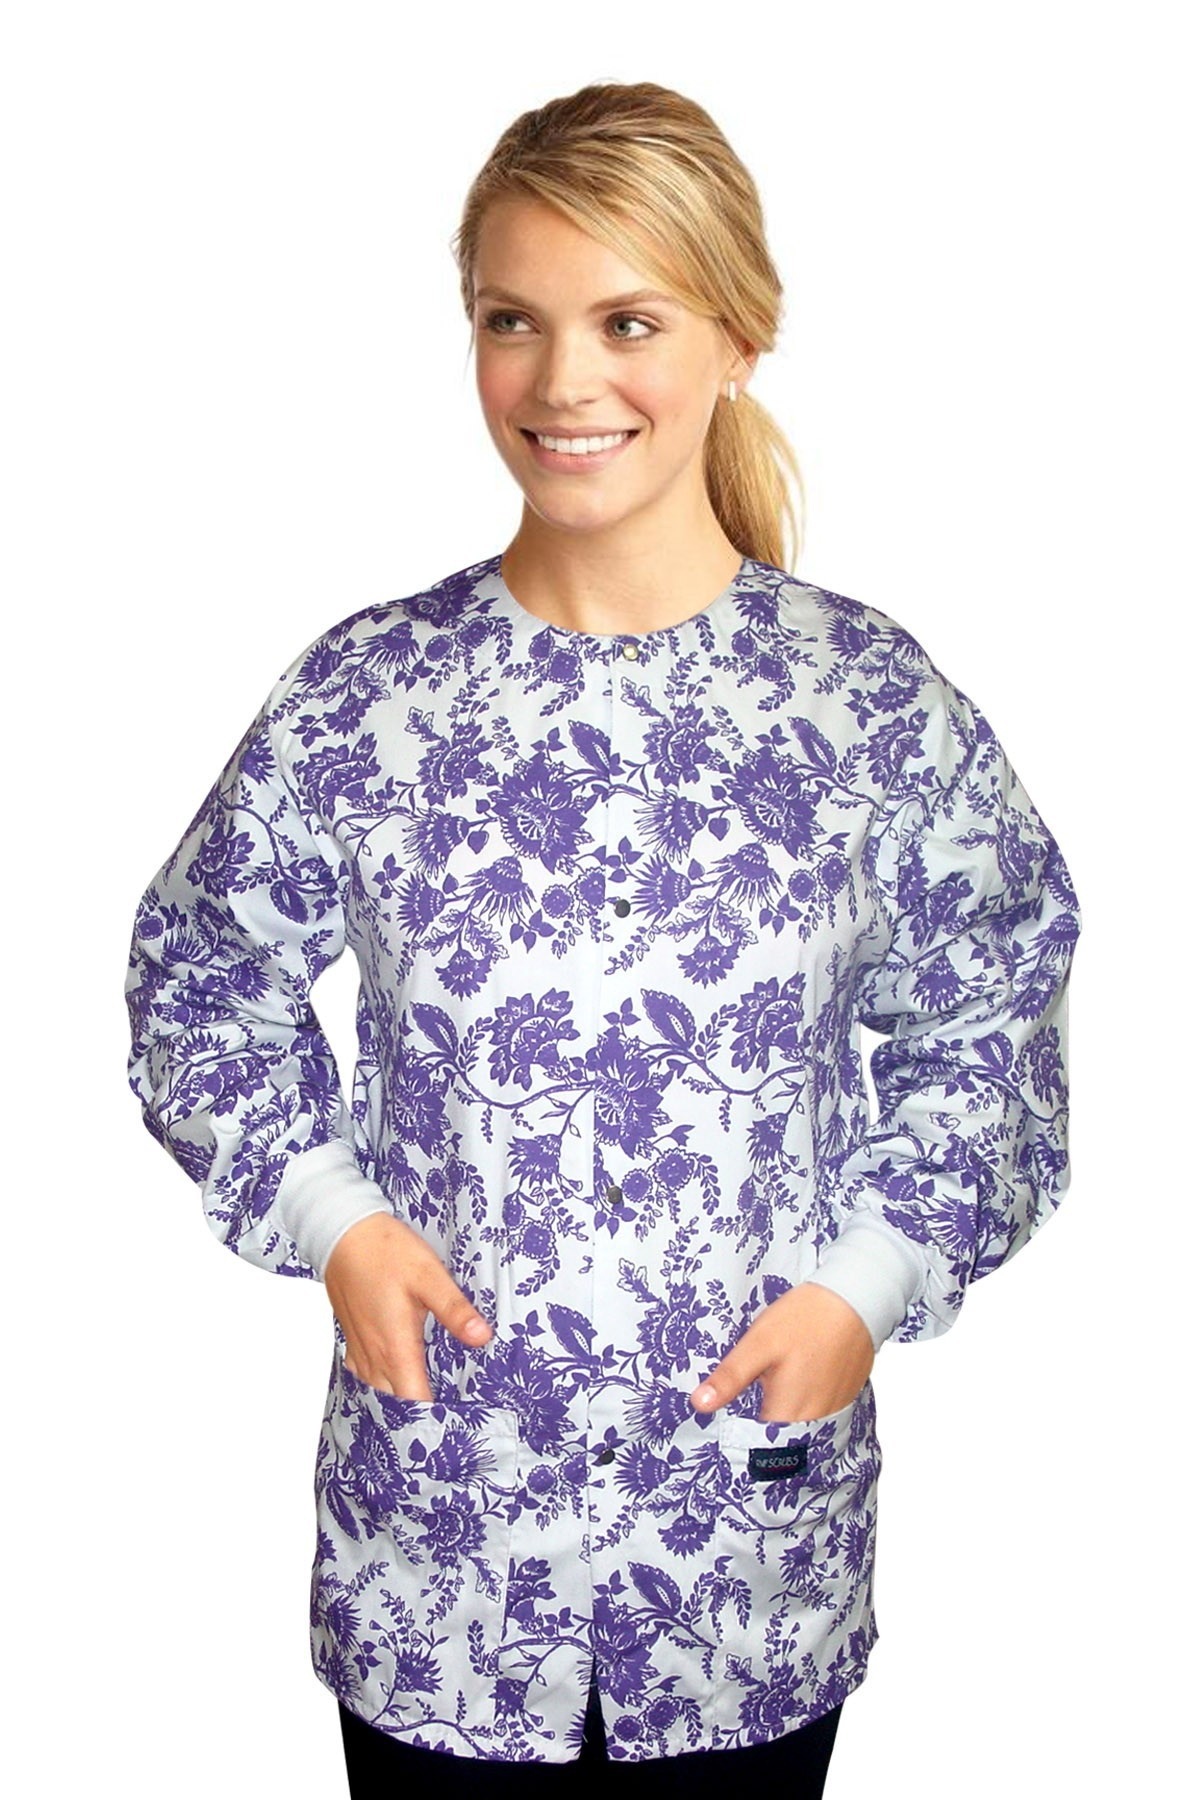 Jacket 2 pocket printed unisex full sleeve in petal purple print with rib